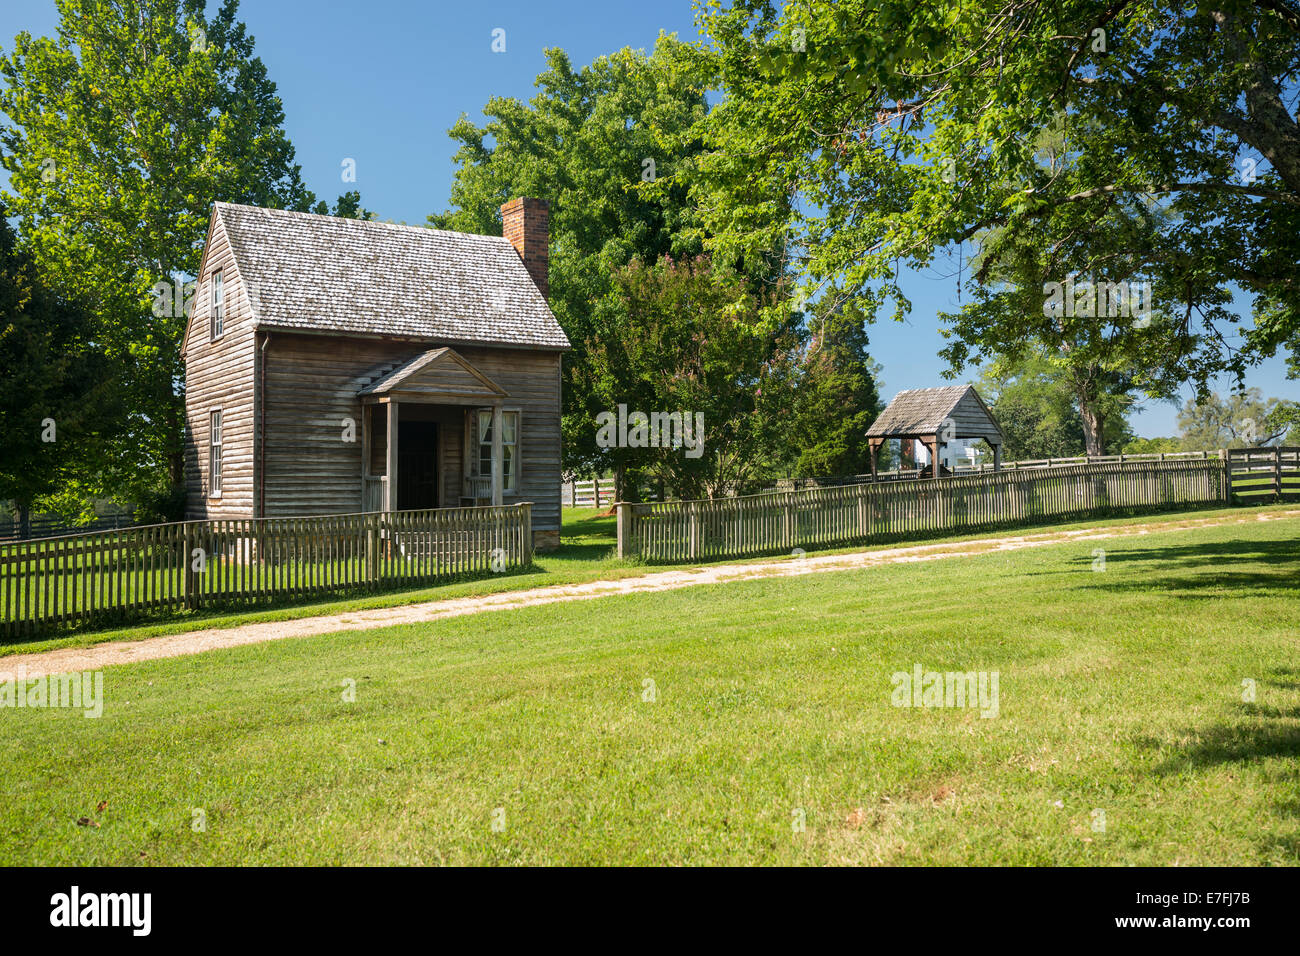 Jones Law Office cabin at Appomattox County Courthouse National Park Virginia - Stock Image